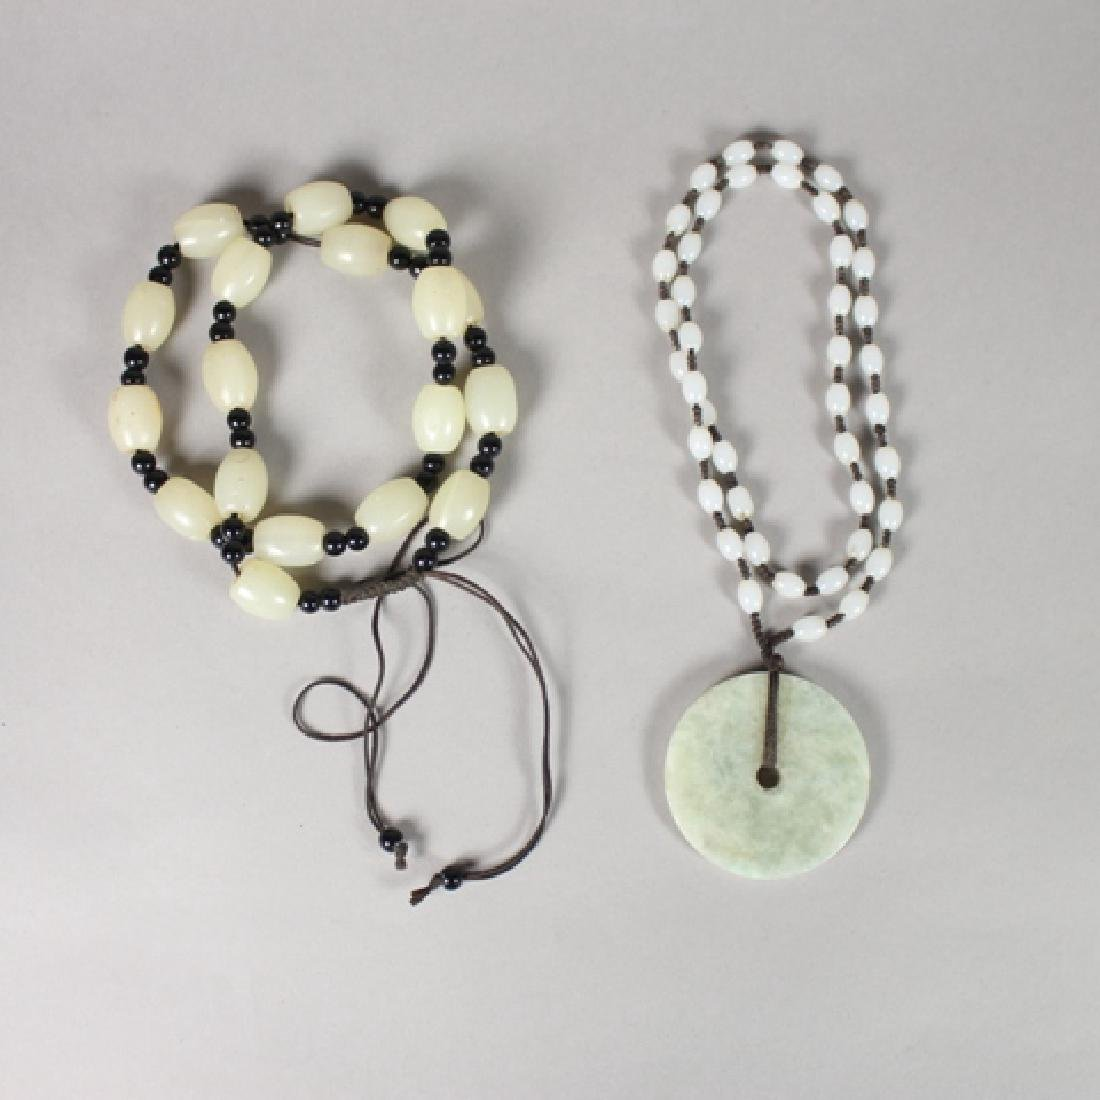 White Jade Beaded Necklaces with Figural Pendants